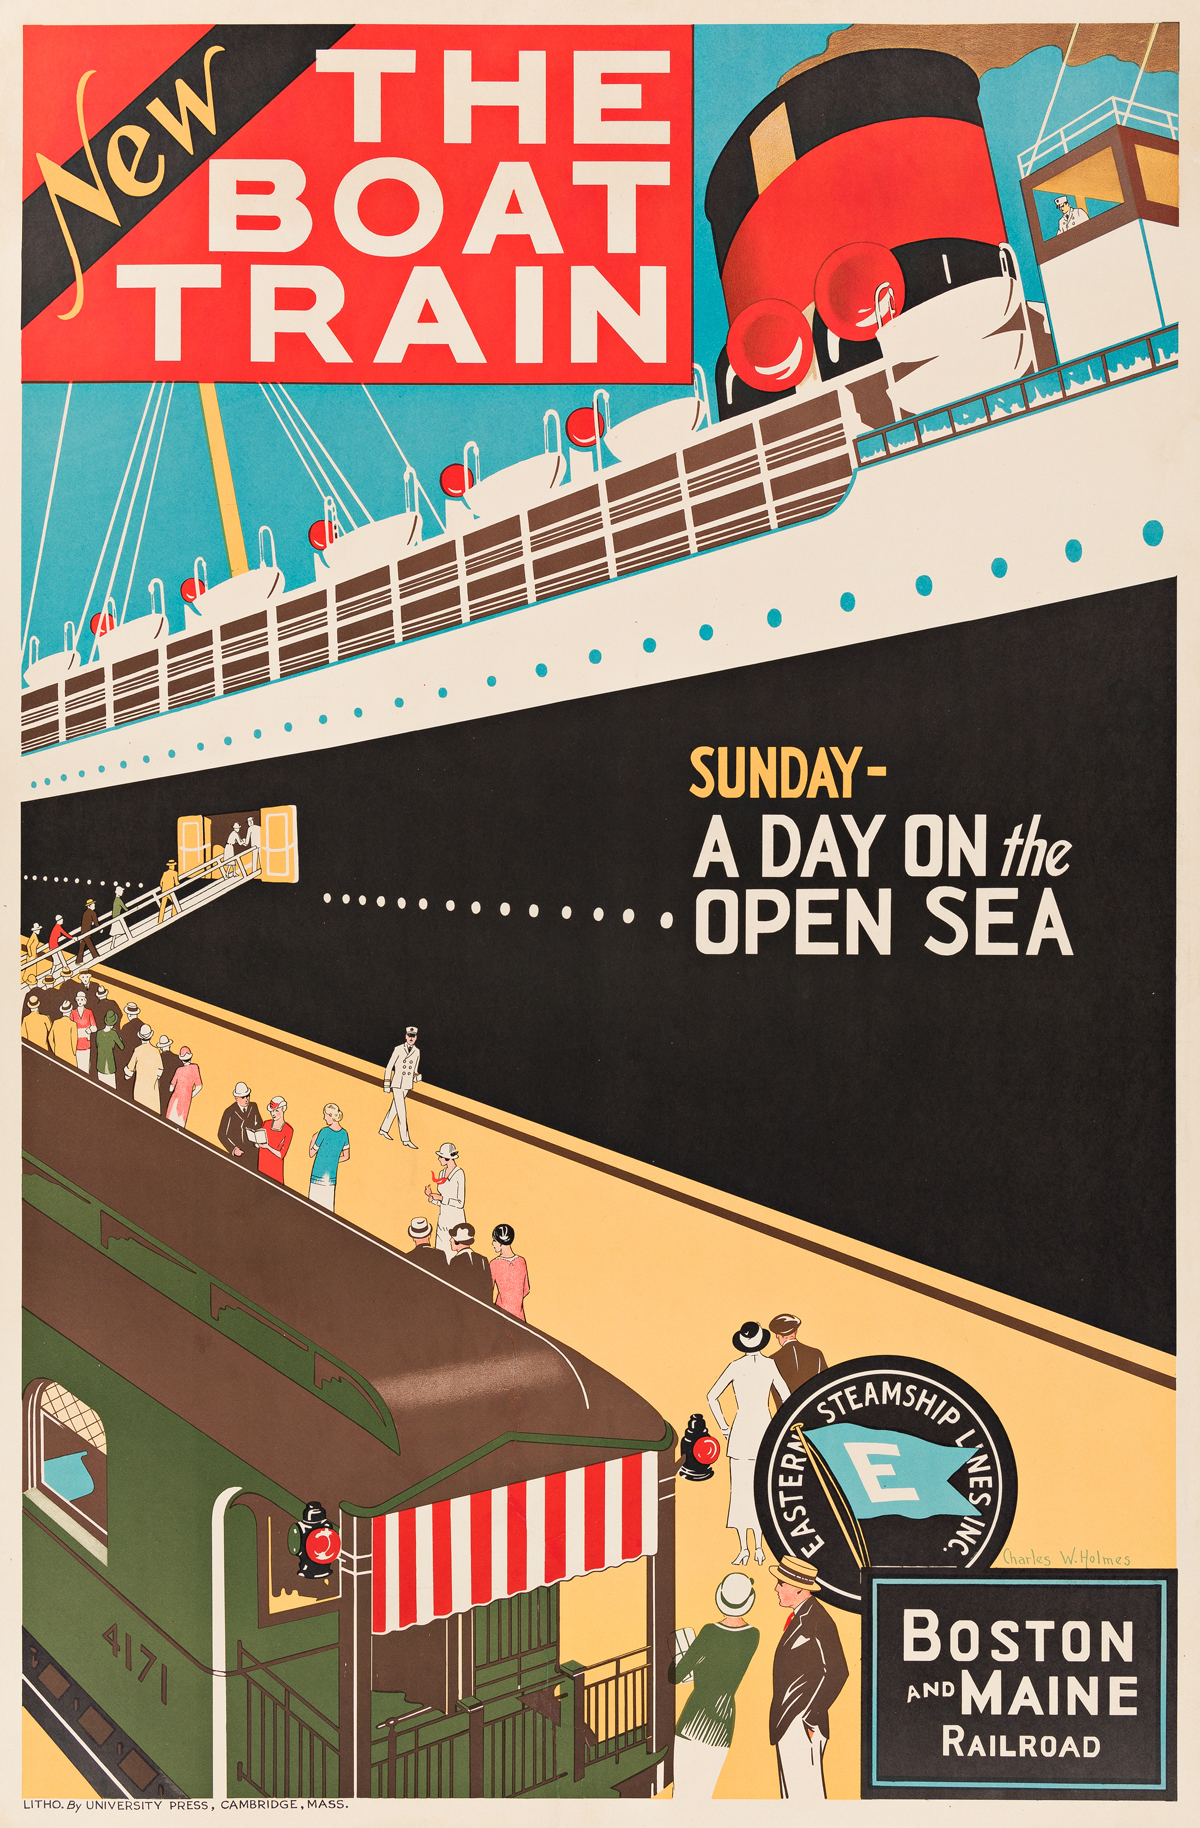 Charles W. Holmes (Dates Unknown).  THE BOAT TRAIN / BOSTON AND MAINE. Circa 1932.